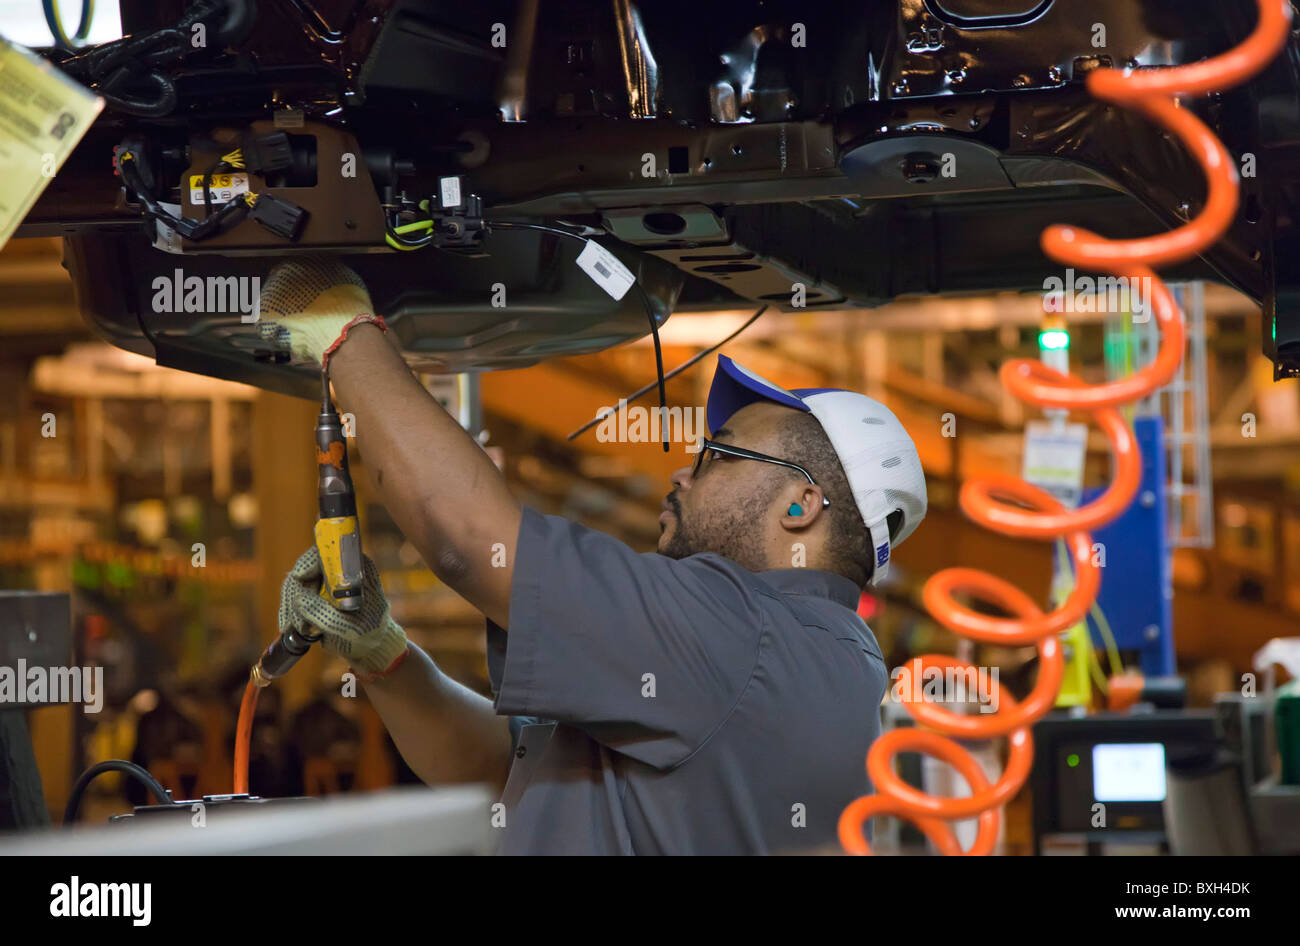 Detroit, Michigan - A worker assembles the a car at General Motors' Detroit-Hamtramck Assembly Plant. - Stock Image